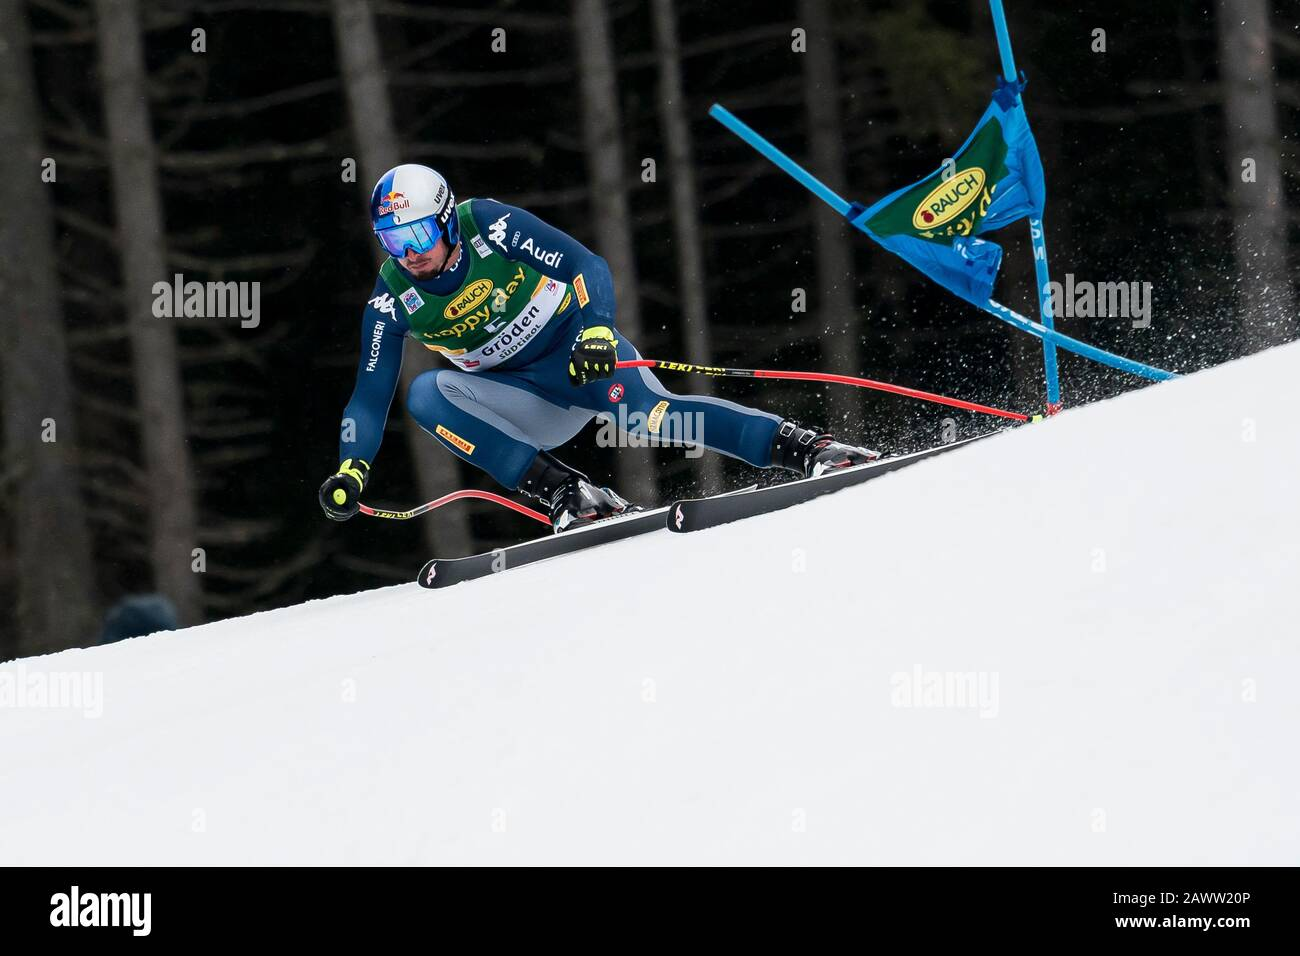 Val Gardena, Italy 20 December 2019. Paris Dominik (Ita) competing in the Audi Fis Alpine Skiing World Cup Men's Super-G Race  on the Saslong Course i Stock Photo